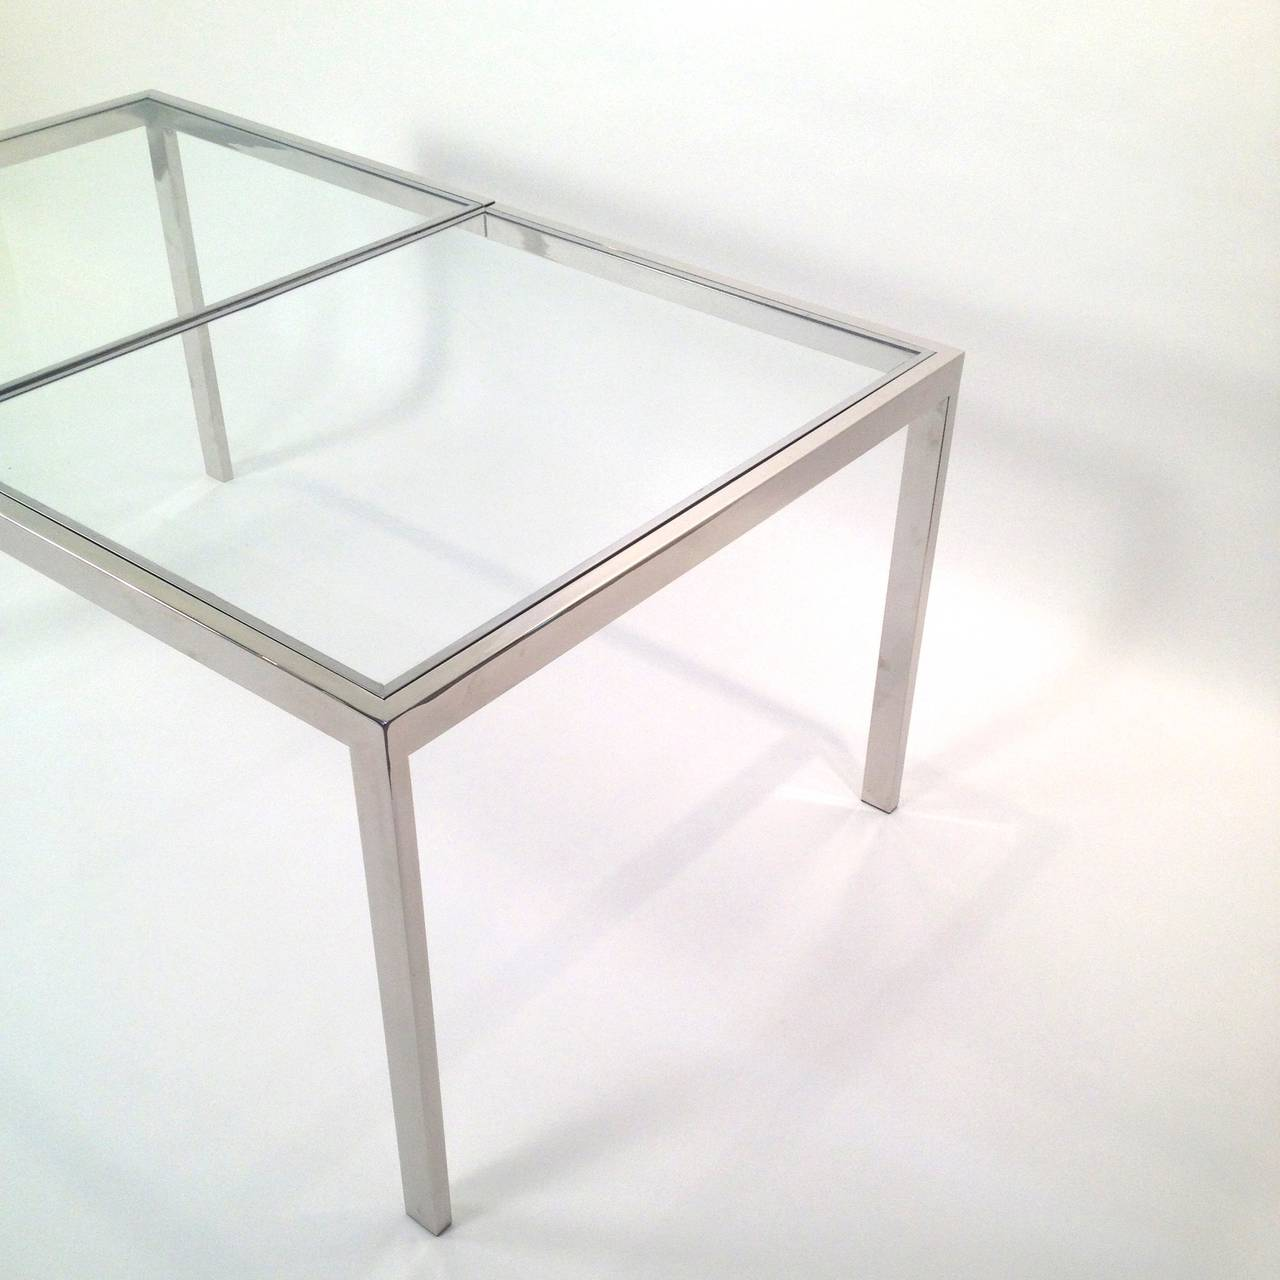 Awesome Offered Is A Chrome Mid Century Vintage Modern Polished Chrome Frame And  Inlaid Glass Top